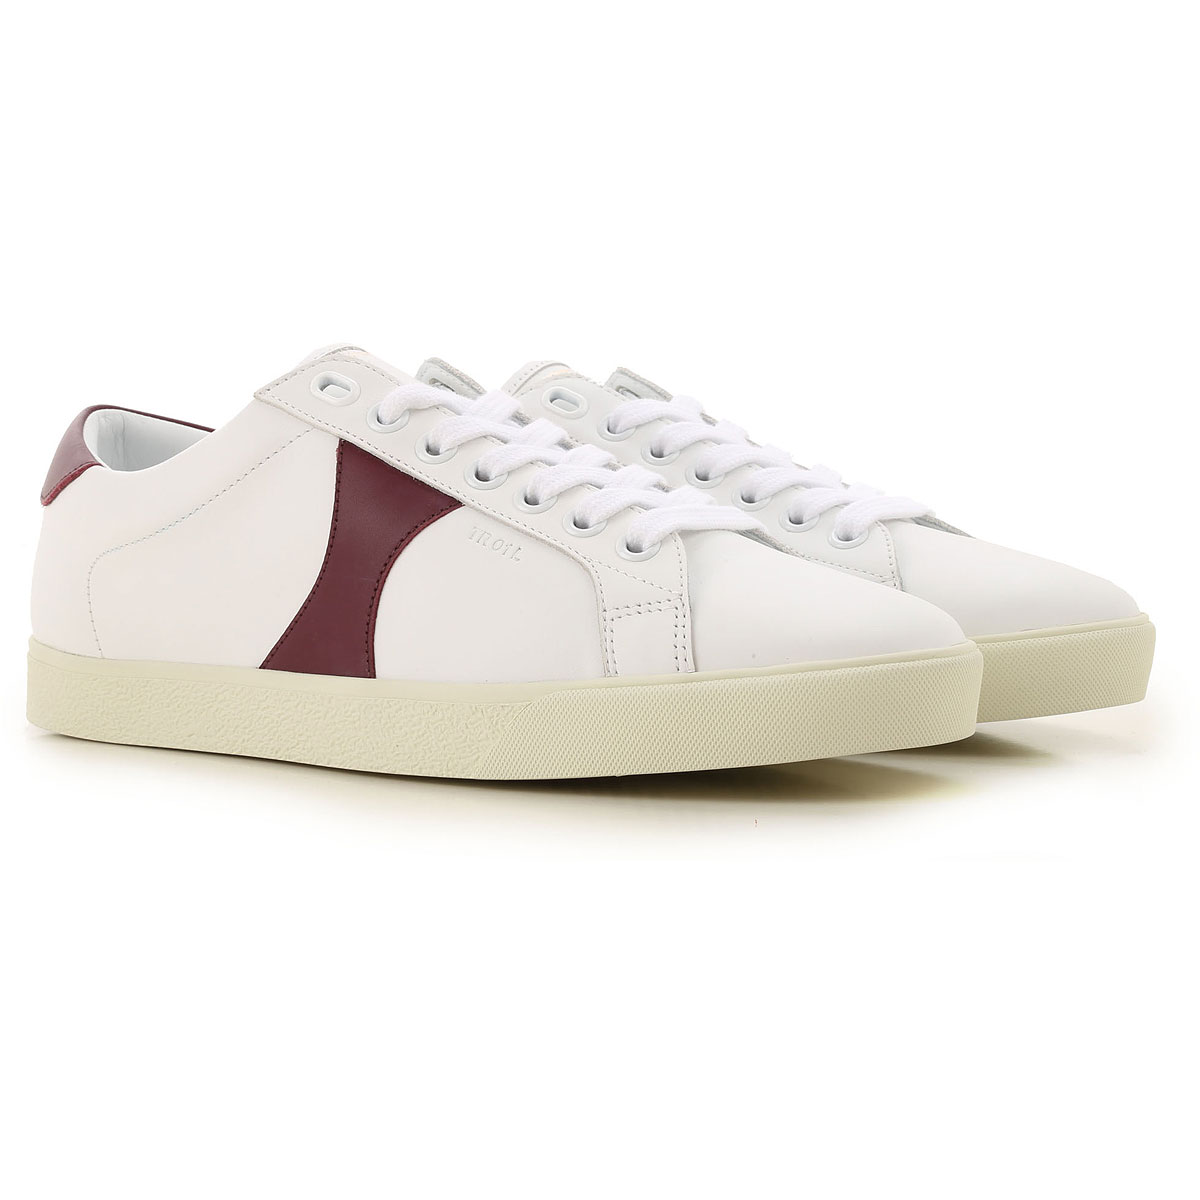 Celine Sneakers for Women On Sale, White, Leather, 2019, 6 7 8 9